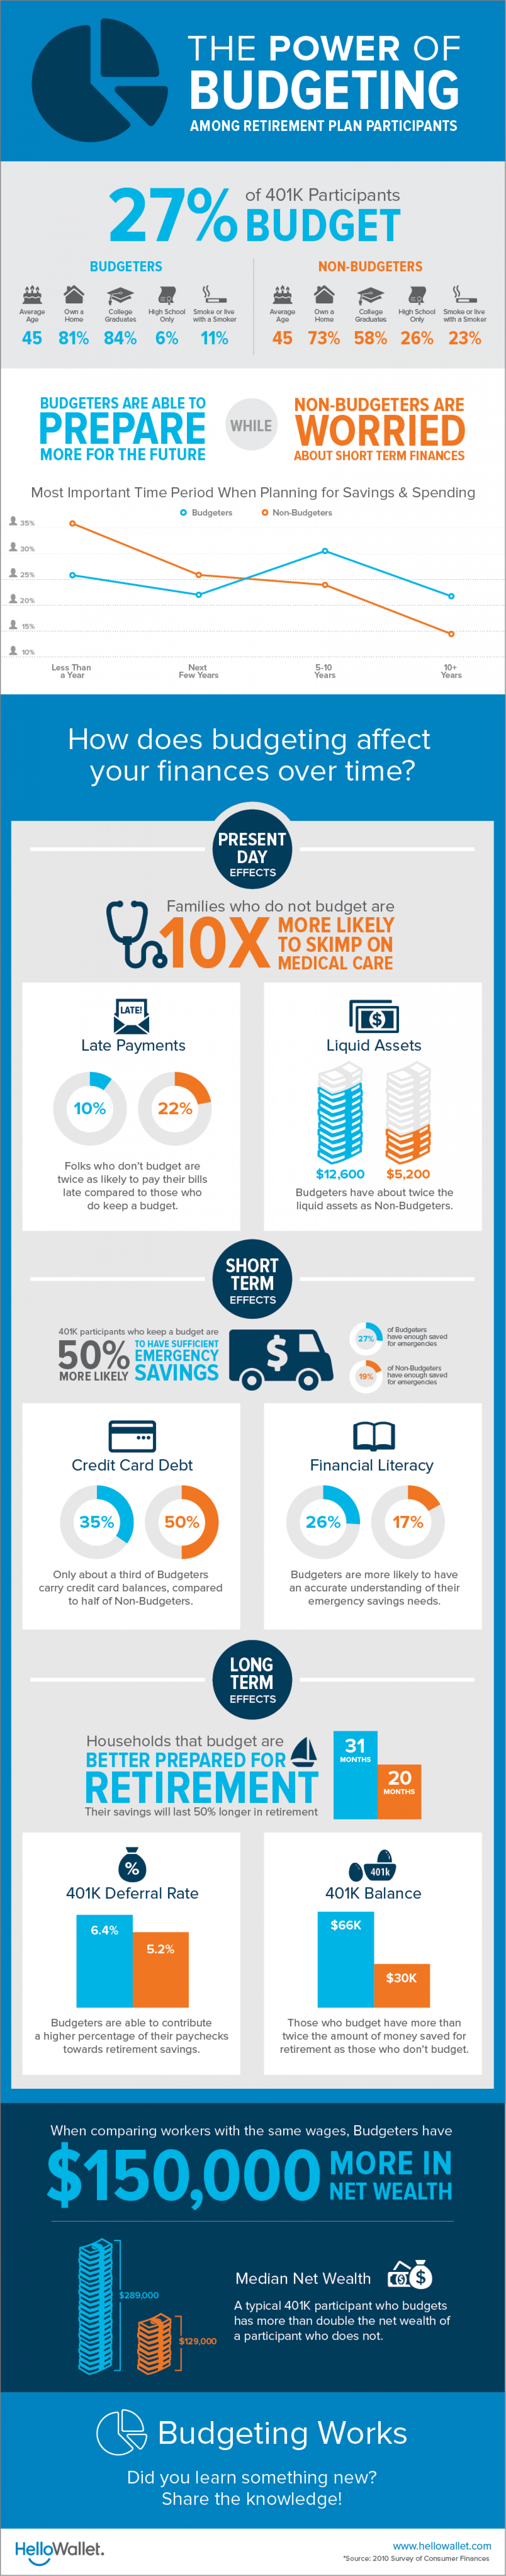 The Power Of Budgeting Infographic